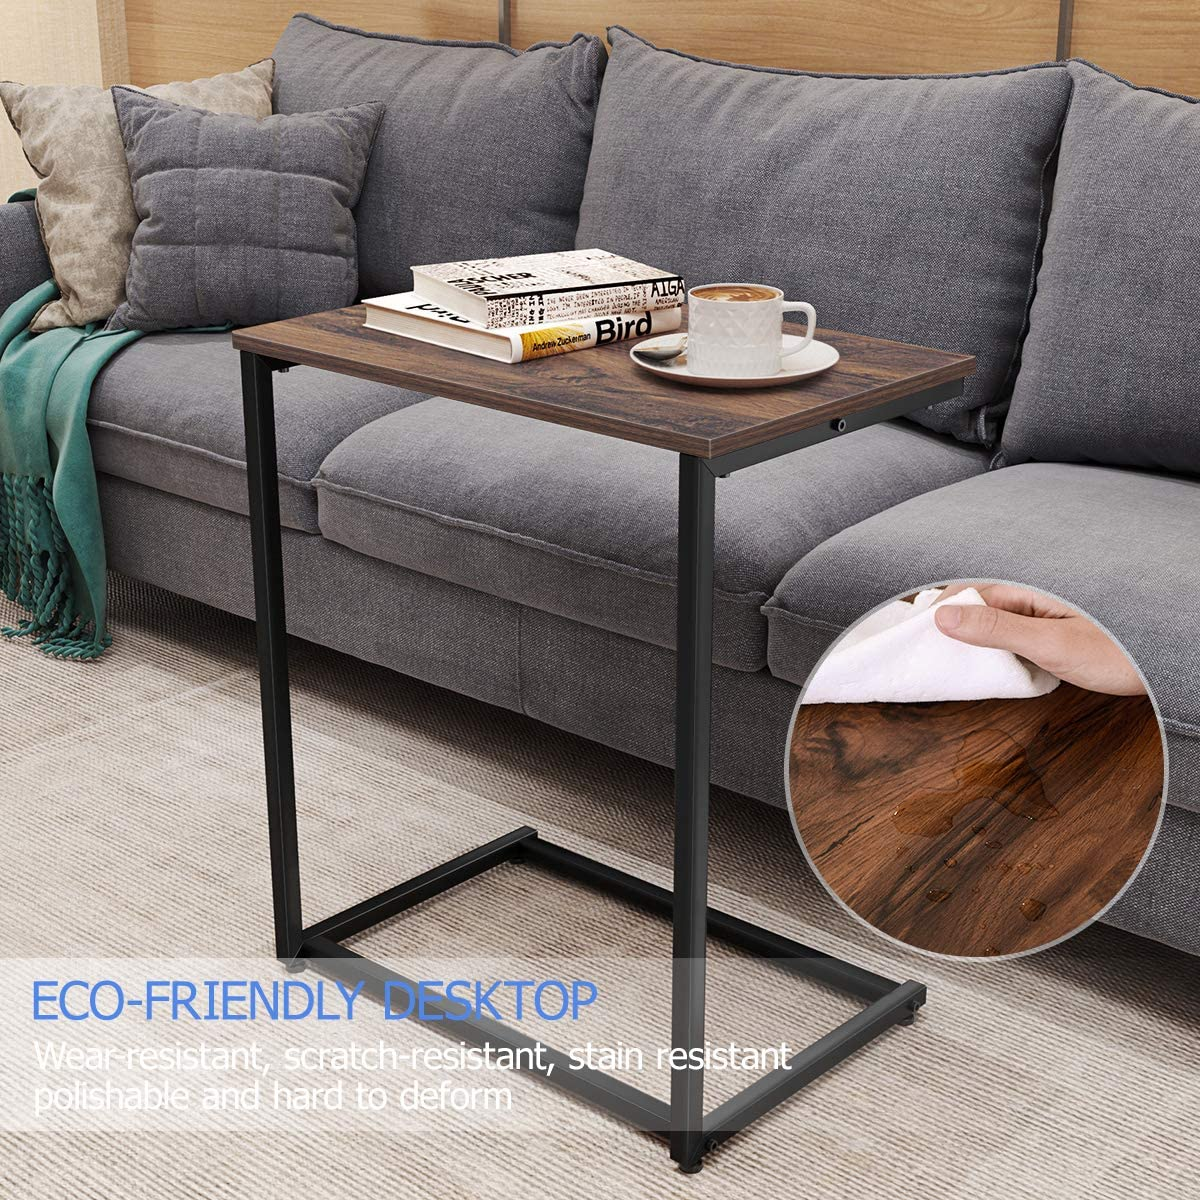 Chair End C Table Sofa Side End Table Wood Finish Steel Construction for Small Space (26-Inch)